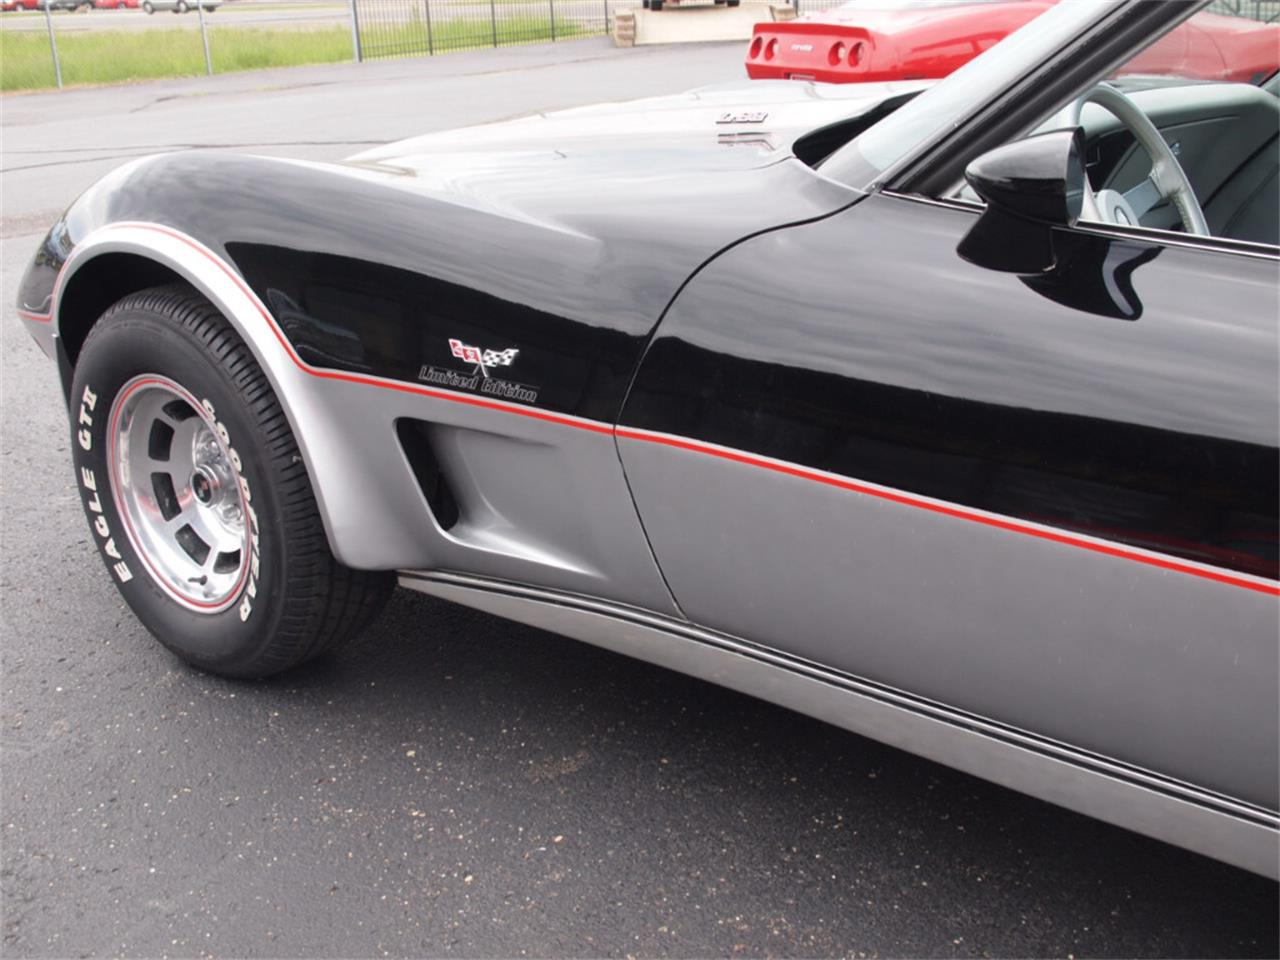 Large Picture of '78 Chevrolet Corvette located in Ohio - $29,500.00 Offered by Ohio Corvettes and Muscle Cars - LF39